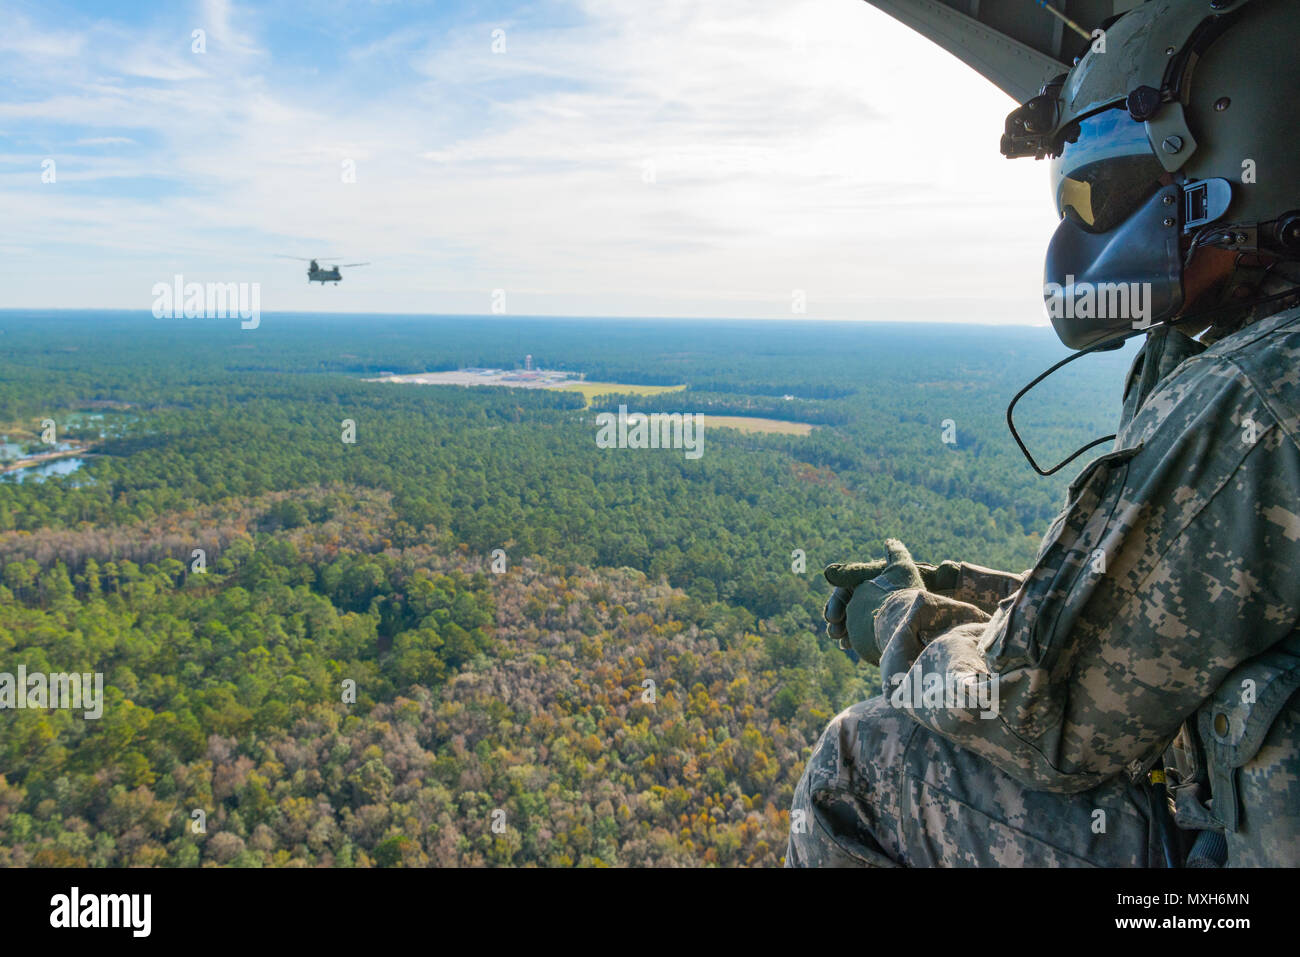 A U.S. Army Chinook crewmember assigned to the 3rd Combat Aviation Brigade observes Chinooks in flight over Fort Stewart during a slingload training mission at Hunter Army Airfield, Nov. 6, 2016. The soldiers are transporting howitzers to a training area on Fort Stewart in support of the 3rd Division Artillery. (U.S. Army photo by Lt. Col. Brian J. Fickel) - Stock Image